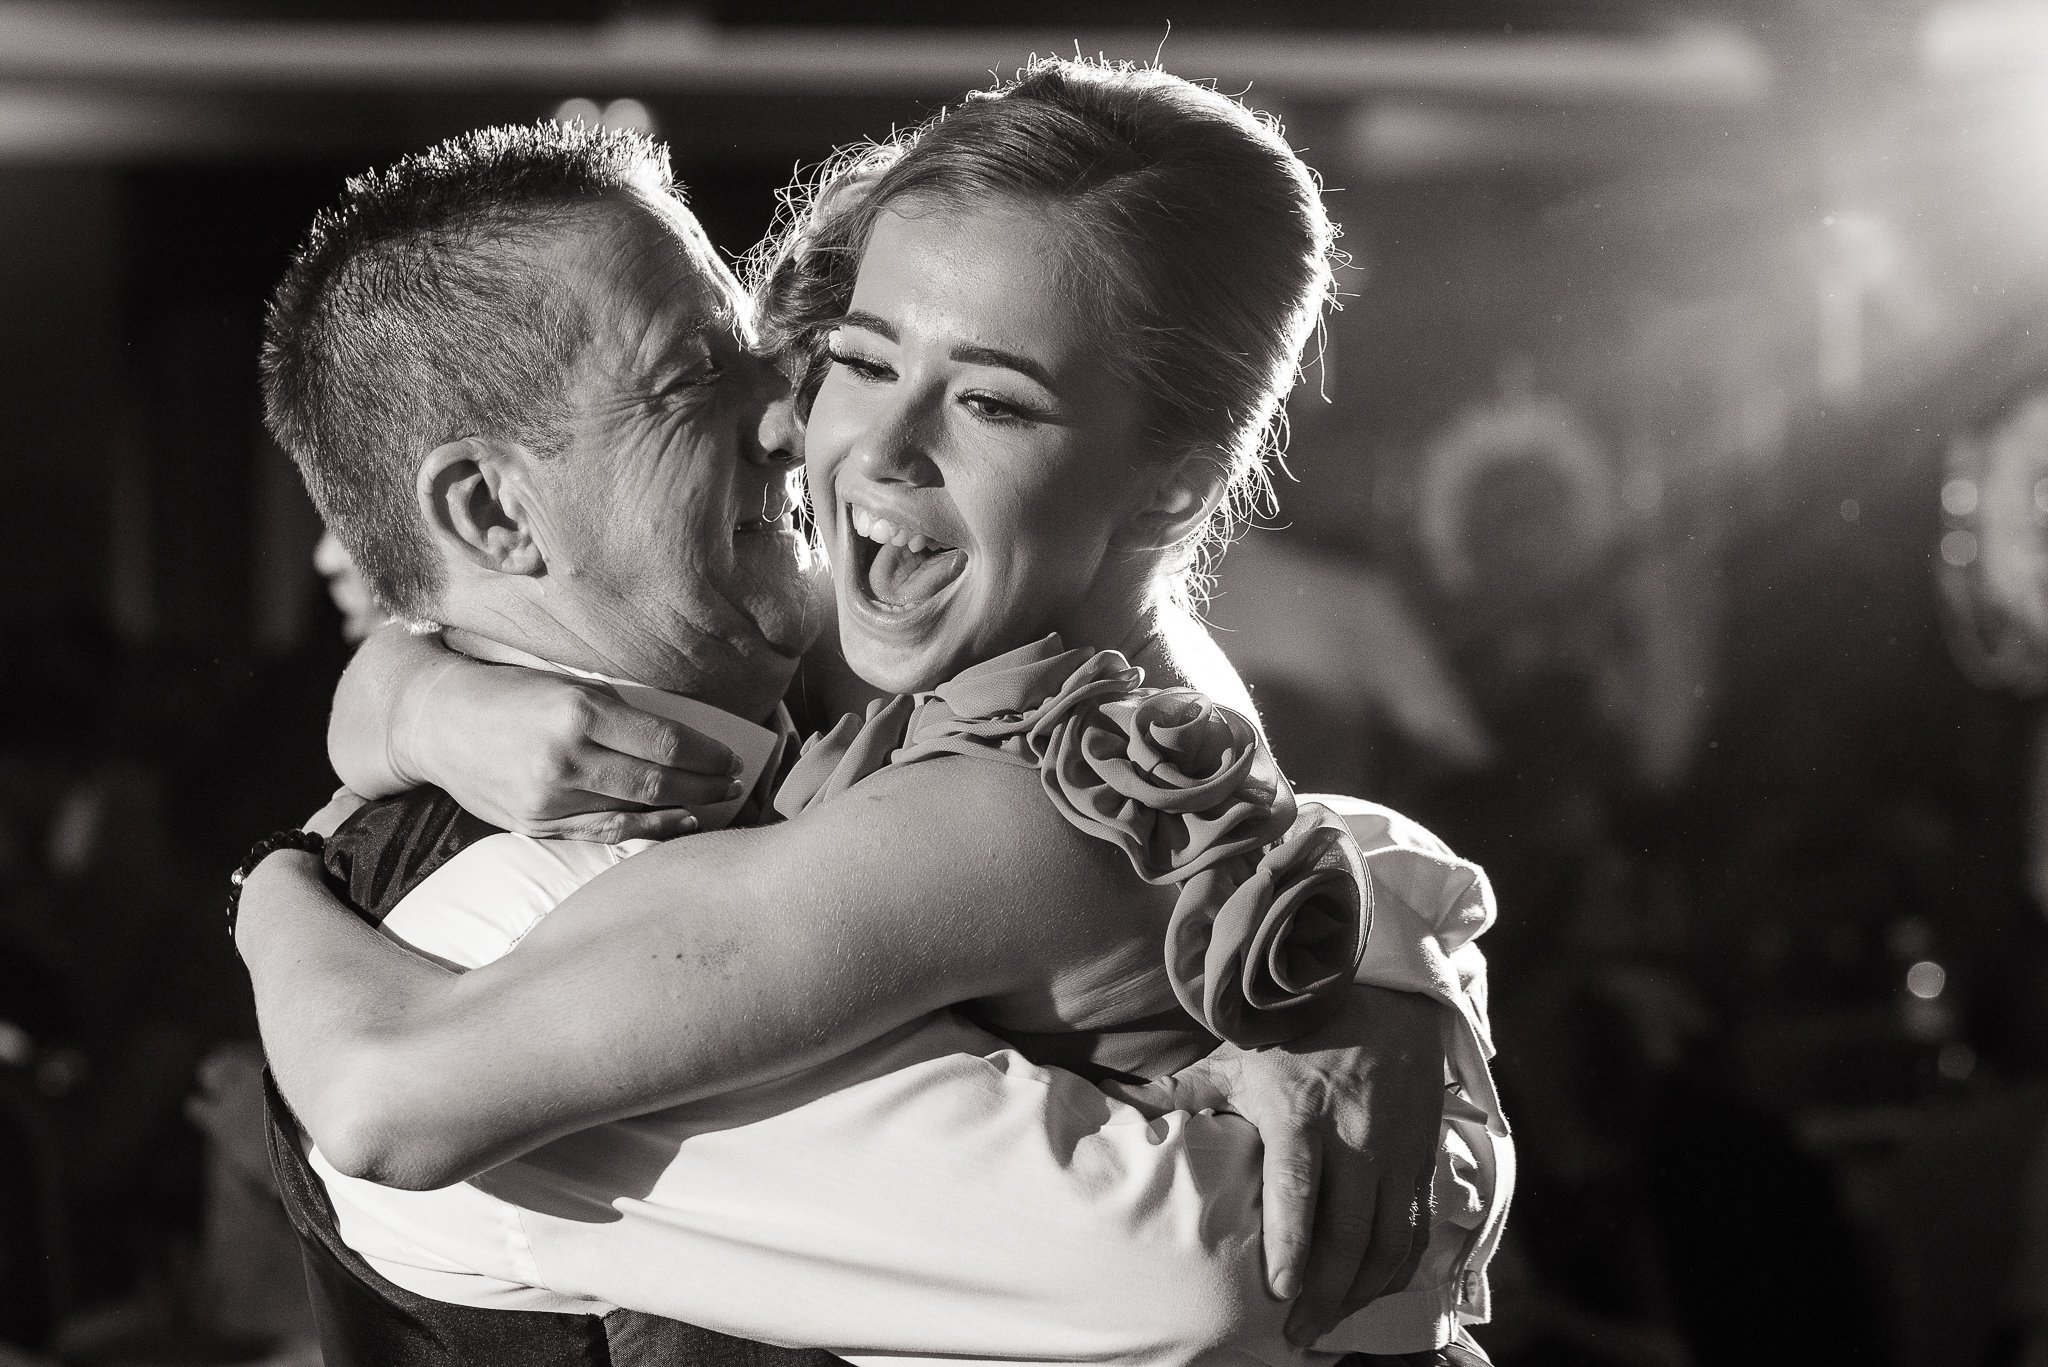 Father and young daughter hugging it out on the dance floor